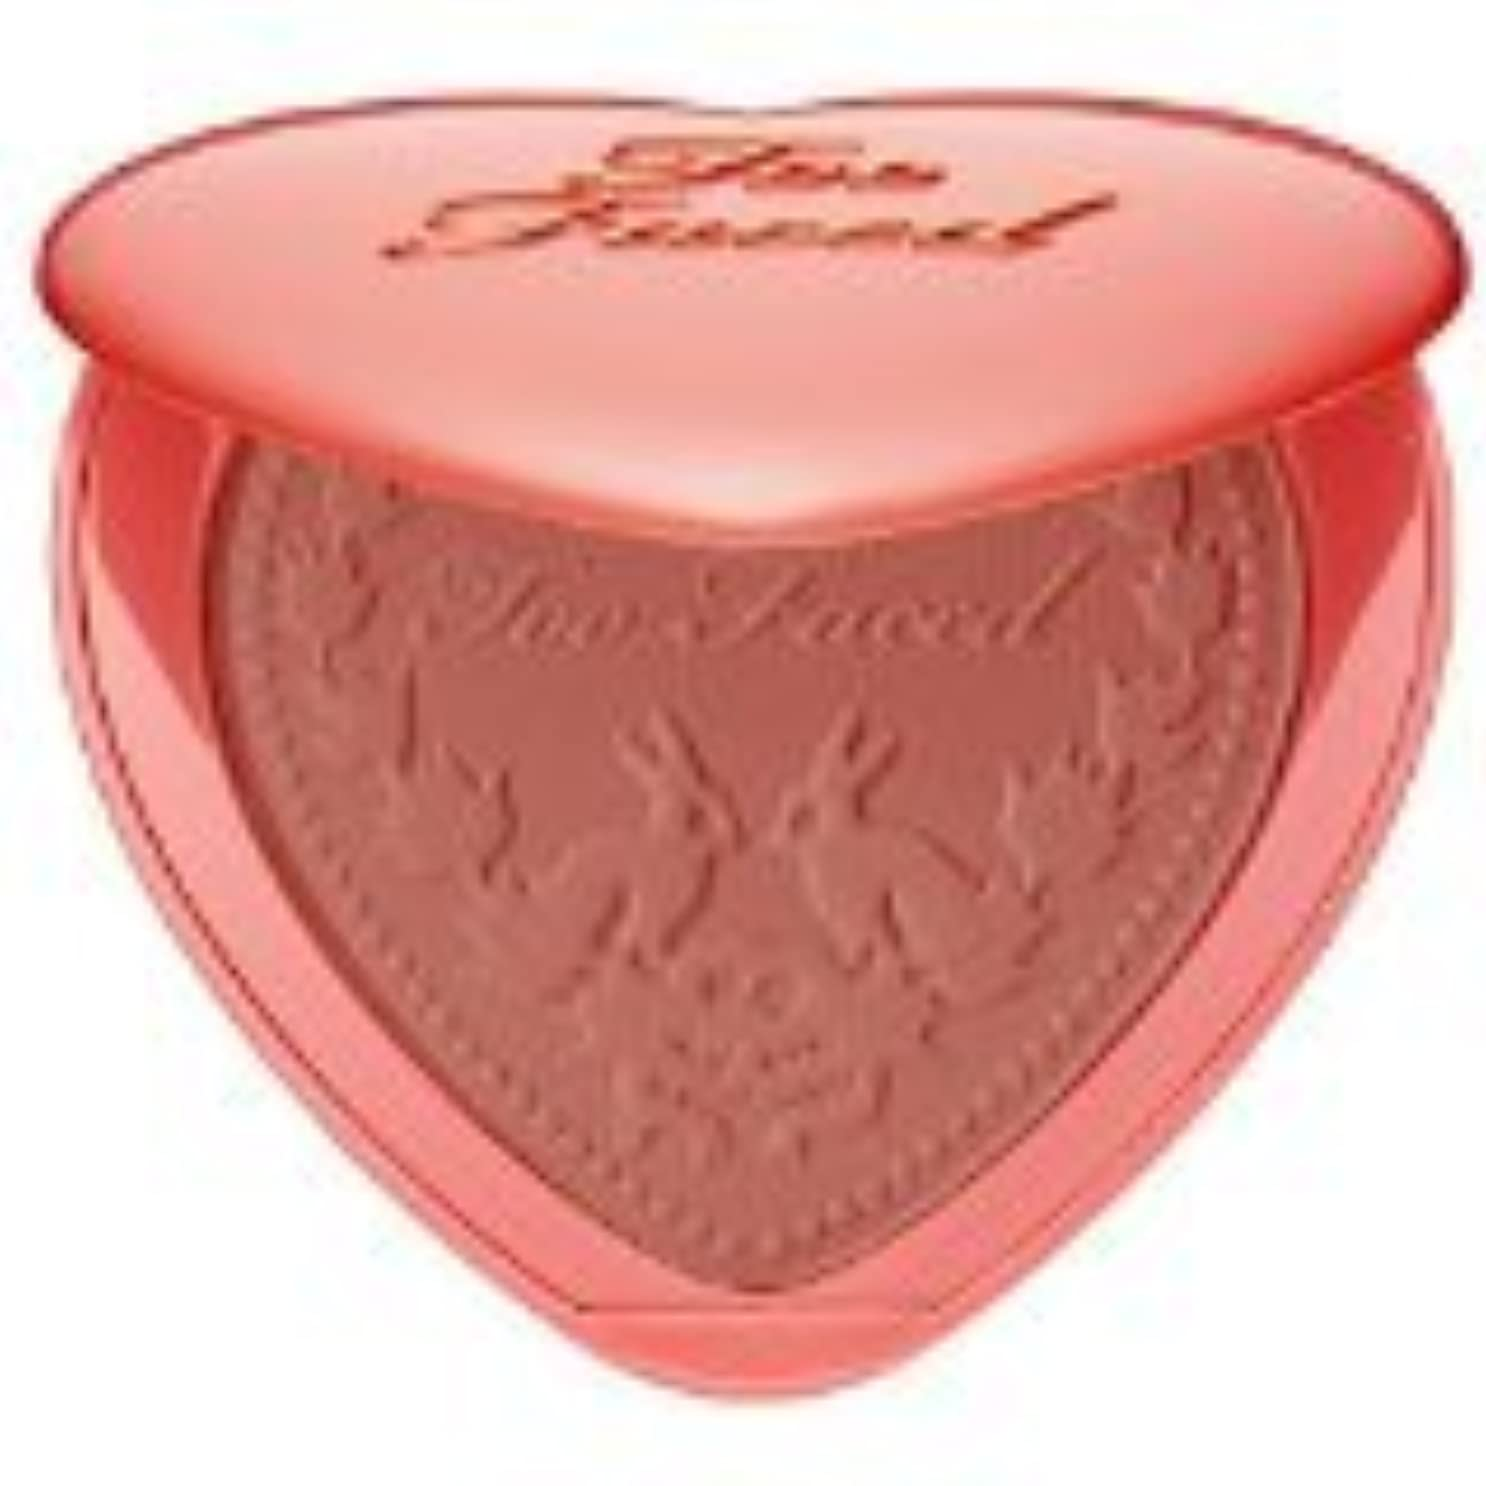 口実ビデオ郵便Too faced Love F Blush - How deep is Y L